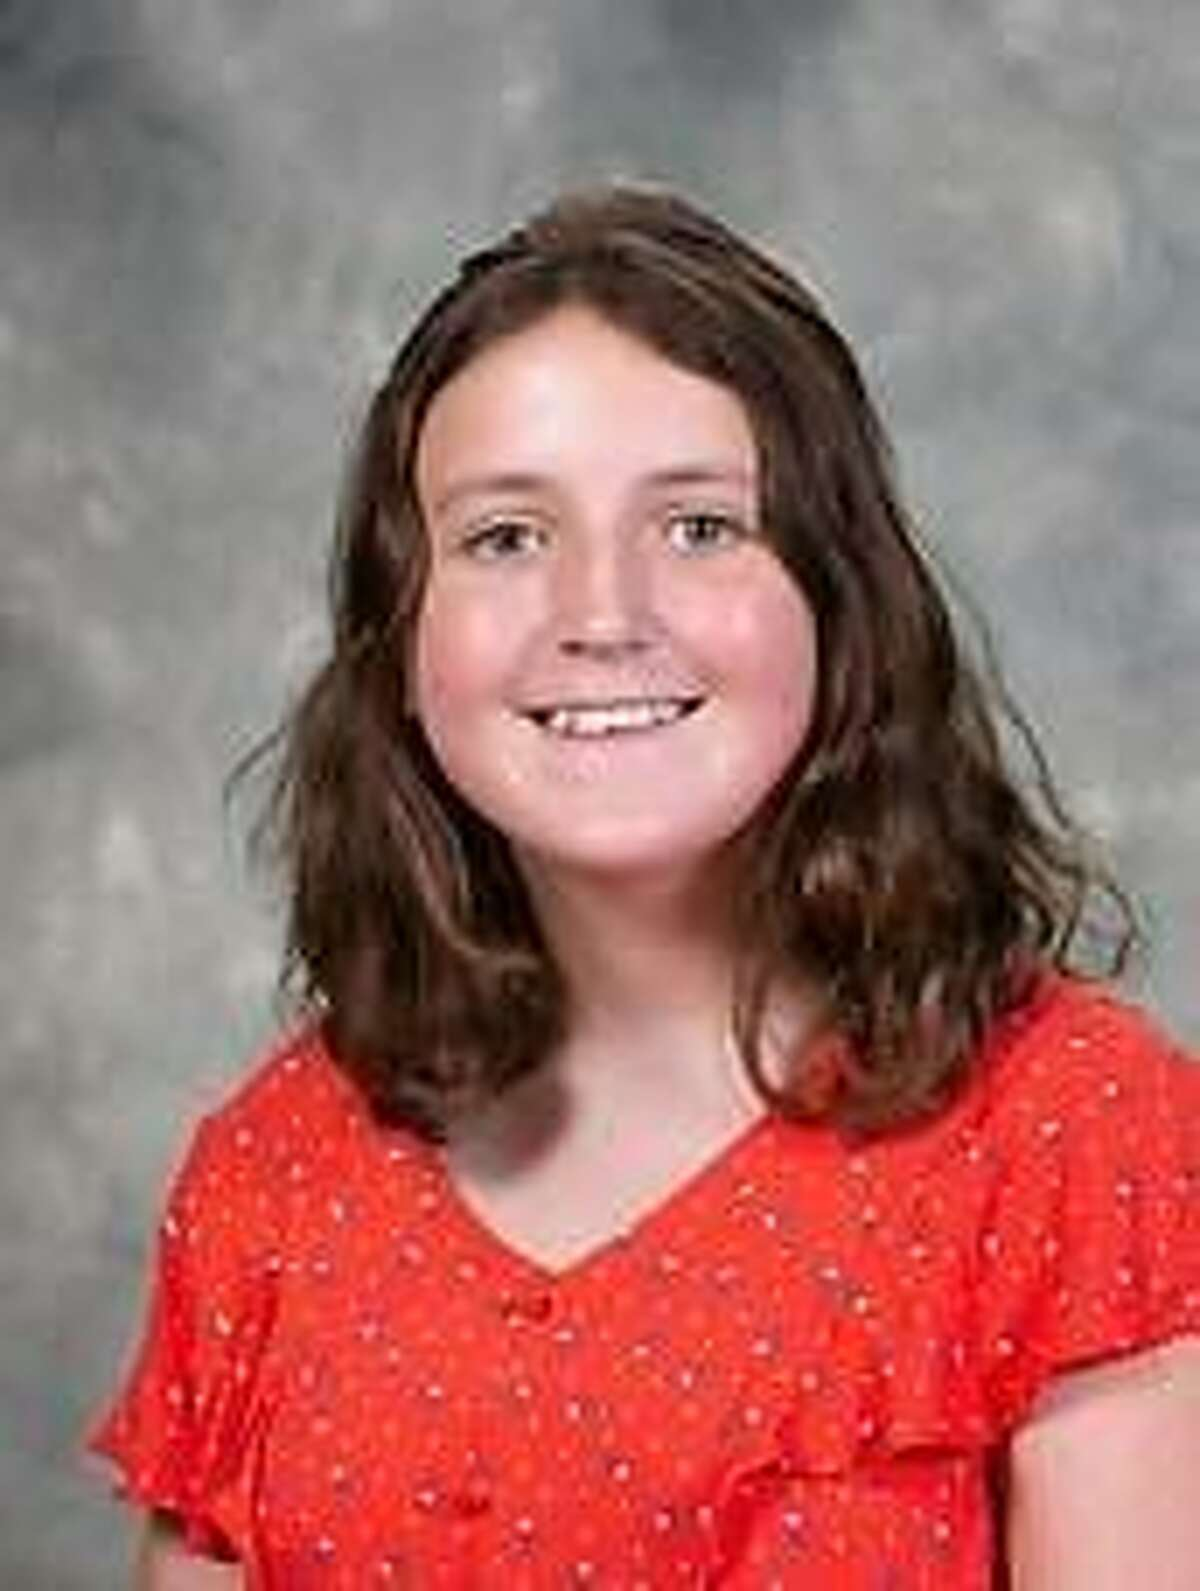 Olivia Terzian, Alana Budrewicz, pictured here, Timothy Donovan and Zanjas Crapo were recently recognized by the Connecticut Association of Boards of Education with a Student Leadership Award.